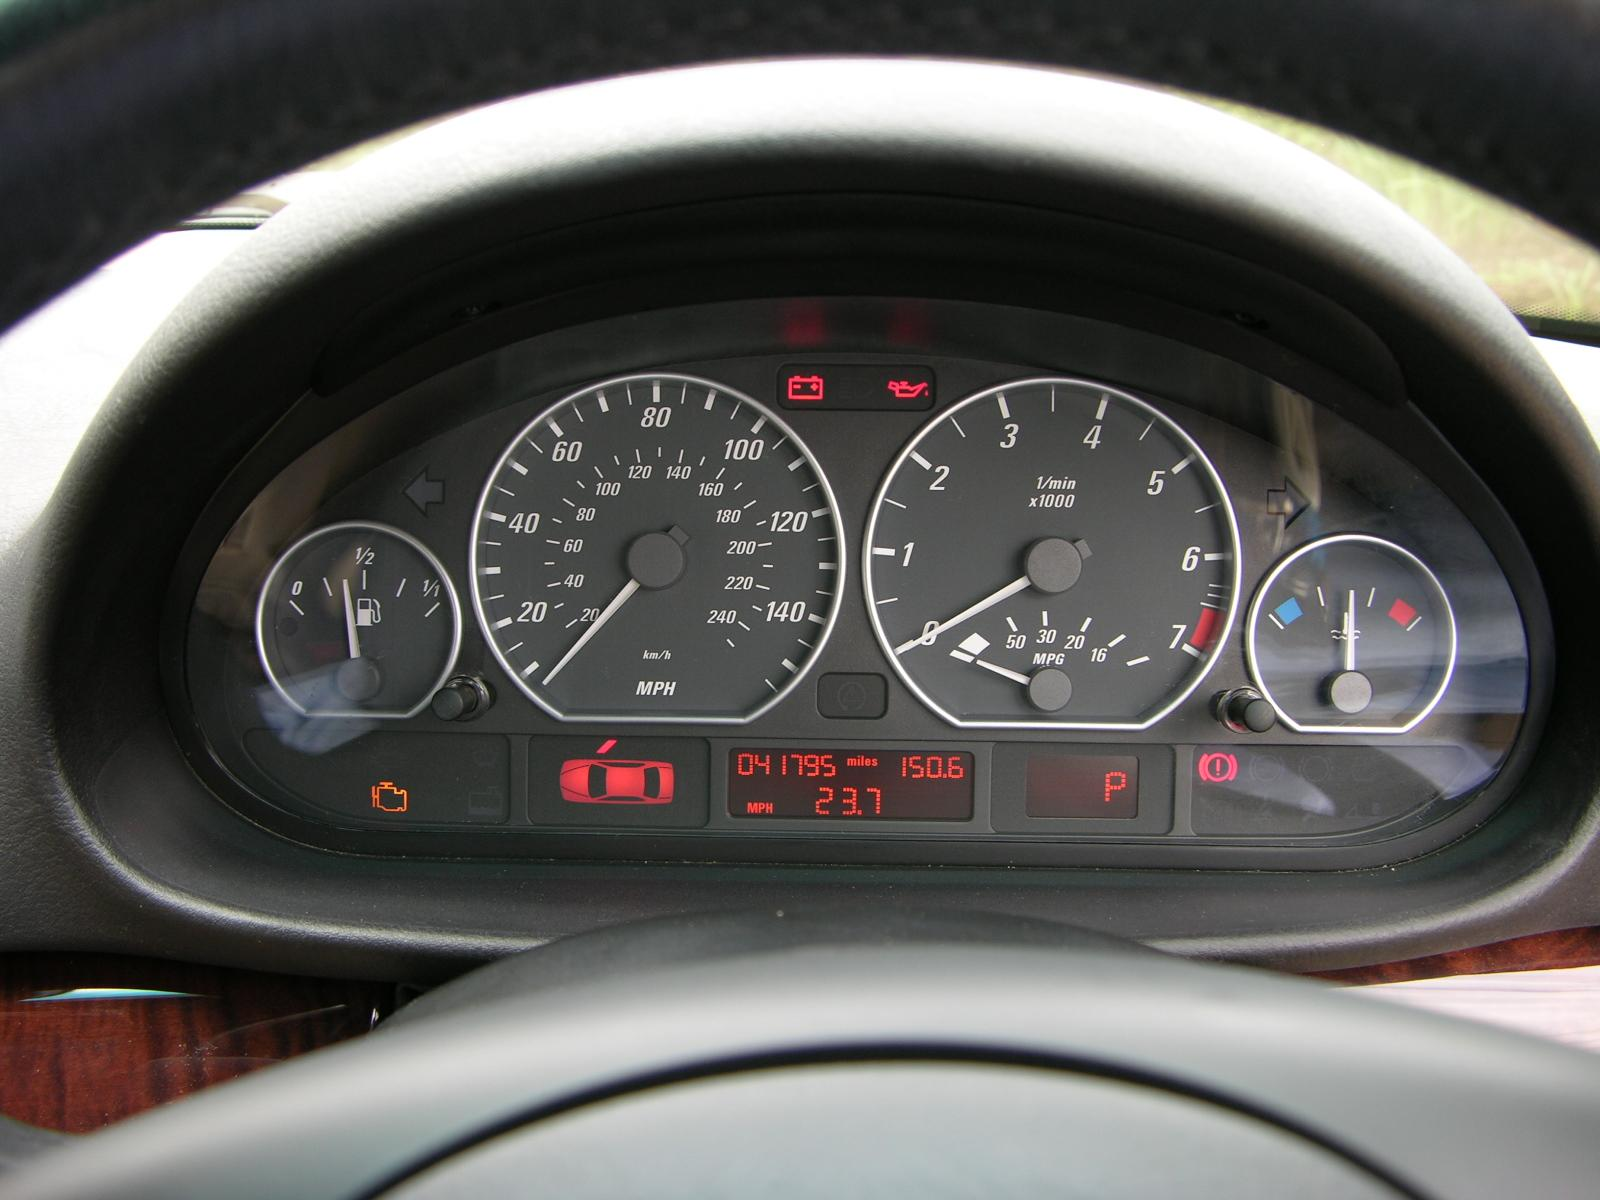 Description BMW E46 Instrument Cluster.jpg